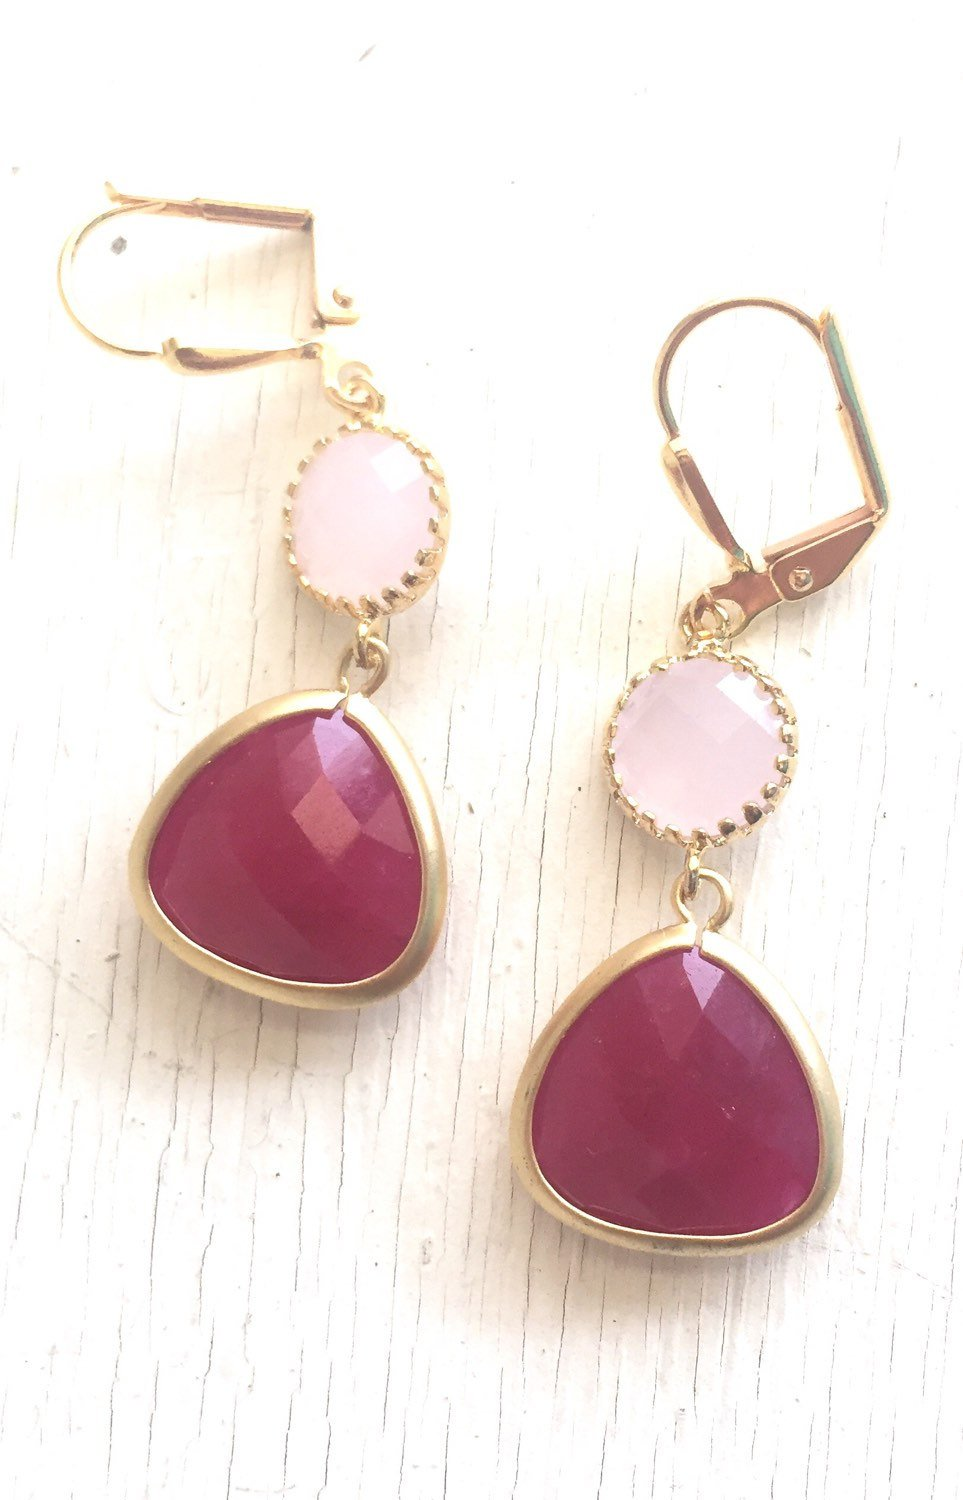 Earrings Bridesmaid Earrings with Fuchsia and Pale Pink Jewels. Pink Bridesmaid Jewelry. Bridal Party Gift. Jewelry. Pink Wedding.